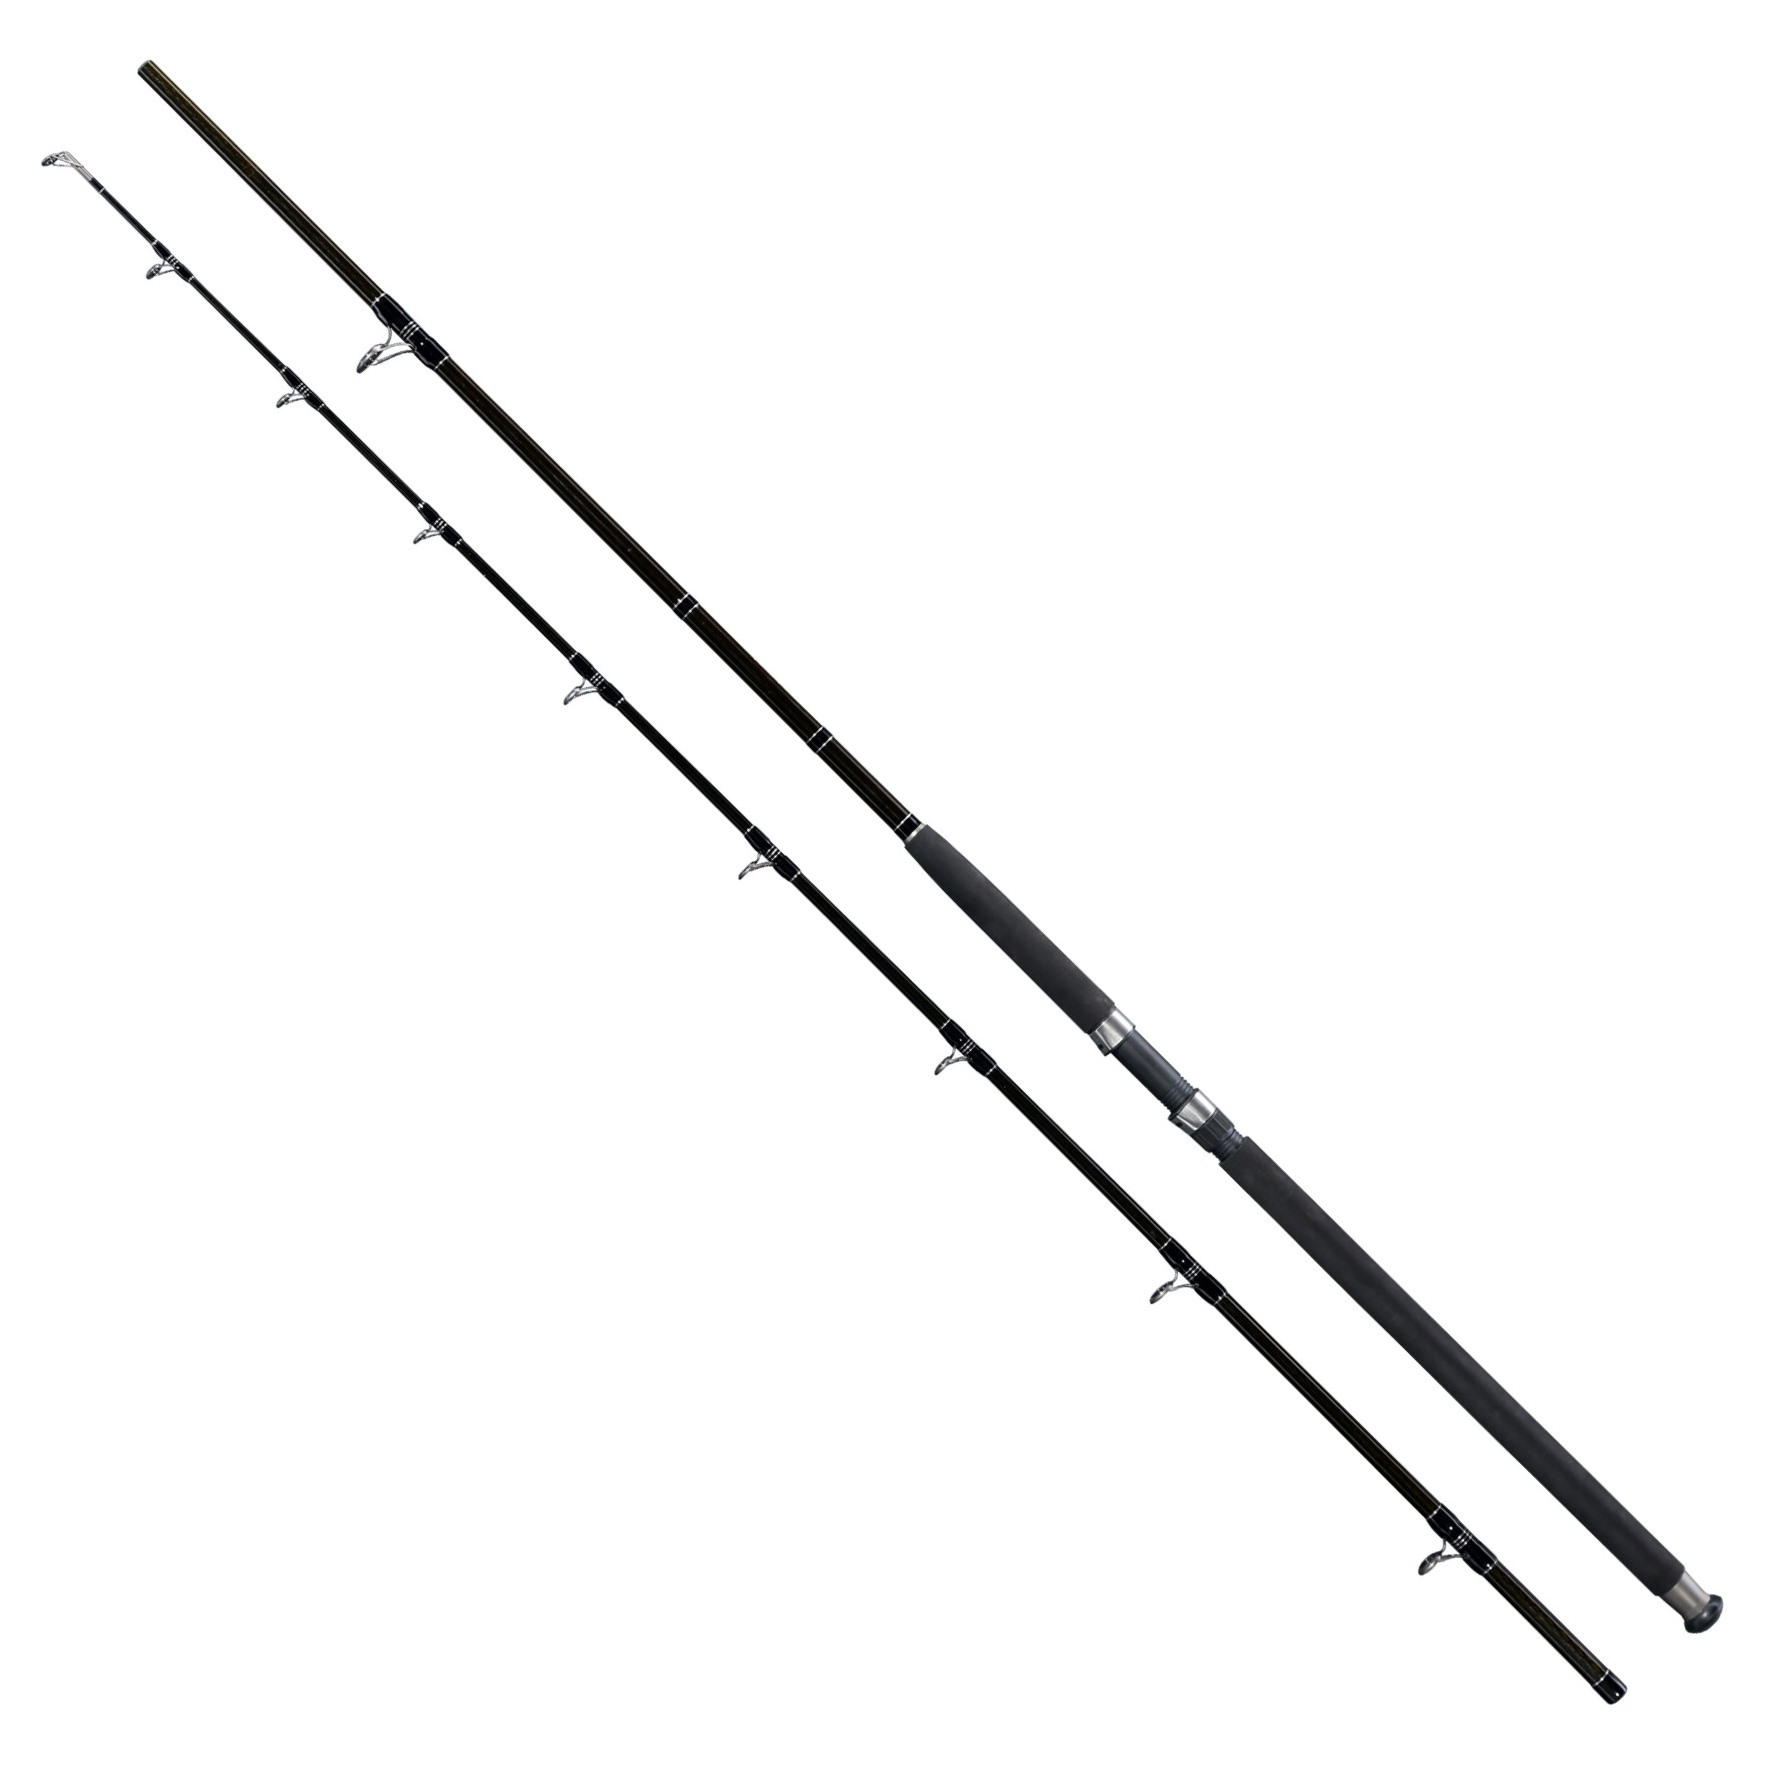 Prut Deluxe Catfish 2,4m 400g - Giants Fishing